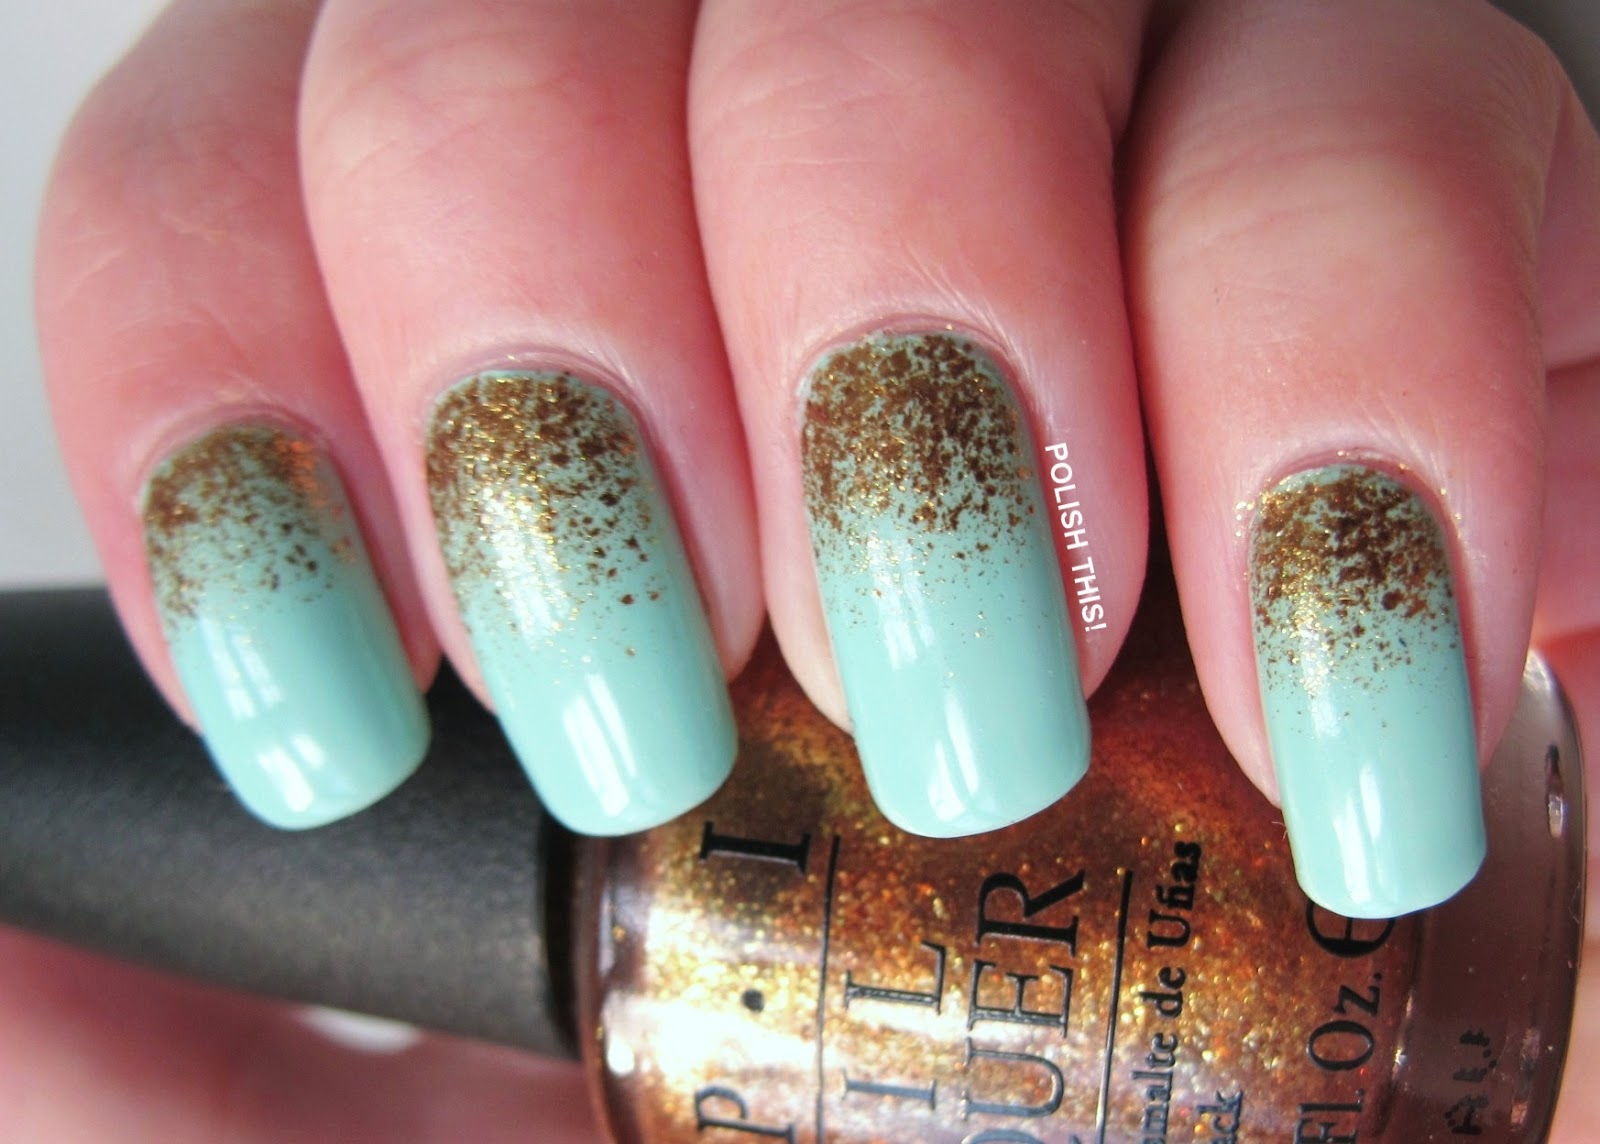 Essie Mint Candy Apple with OPI GoldenEye - Polish This!